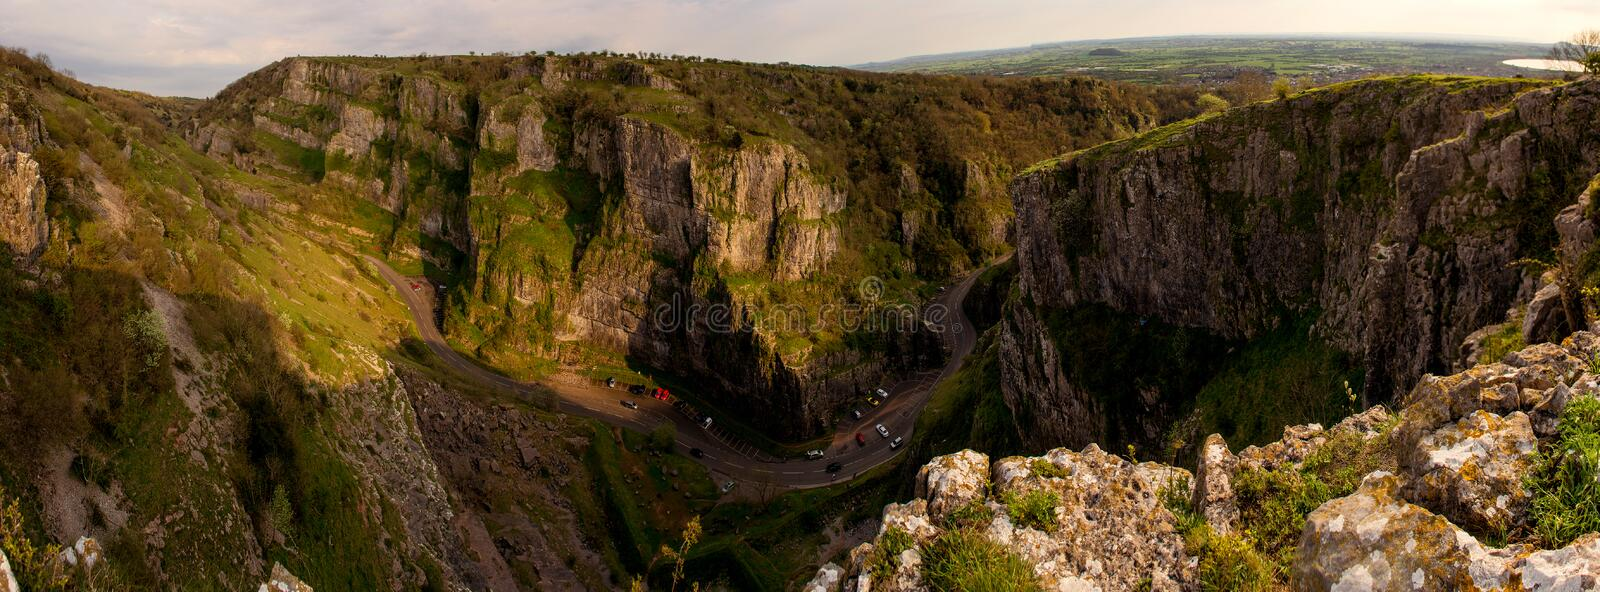 Cheddar Gorge Panorama royalty free stock photo